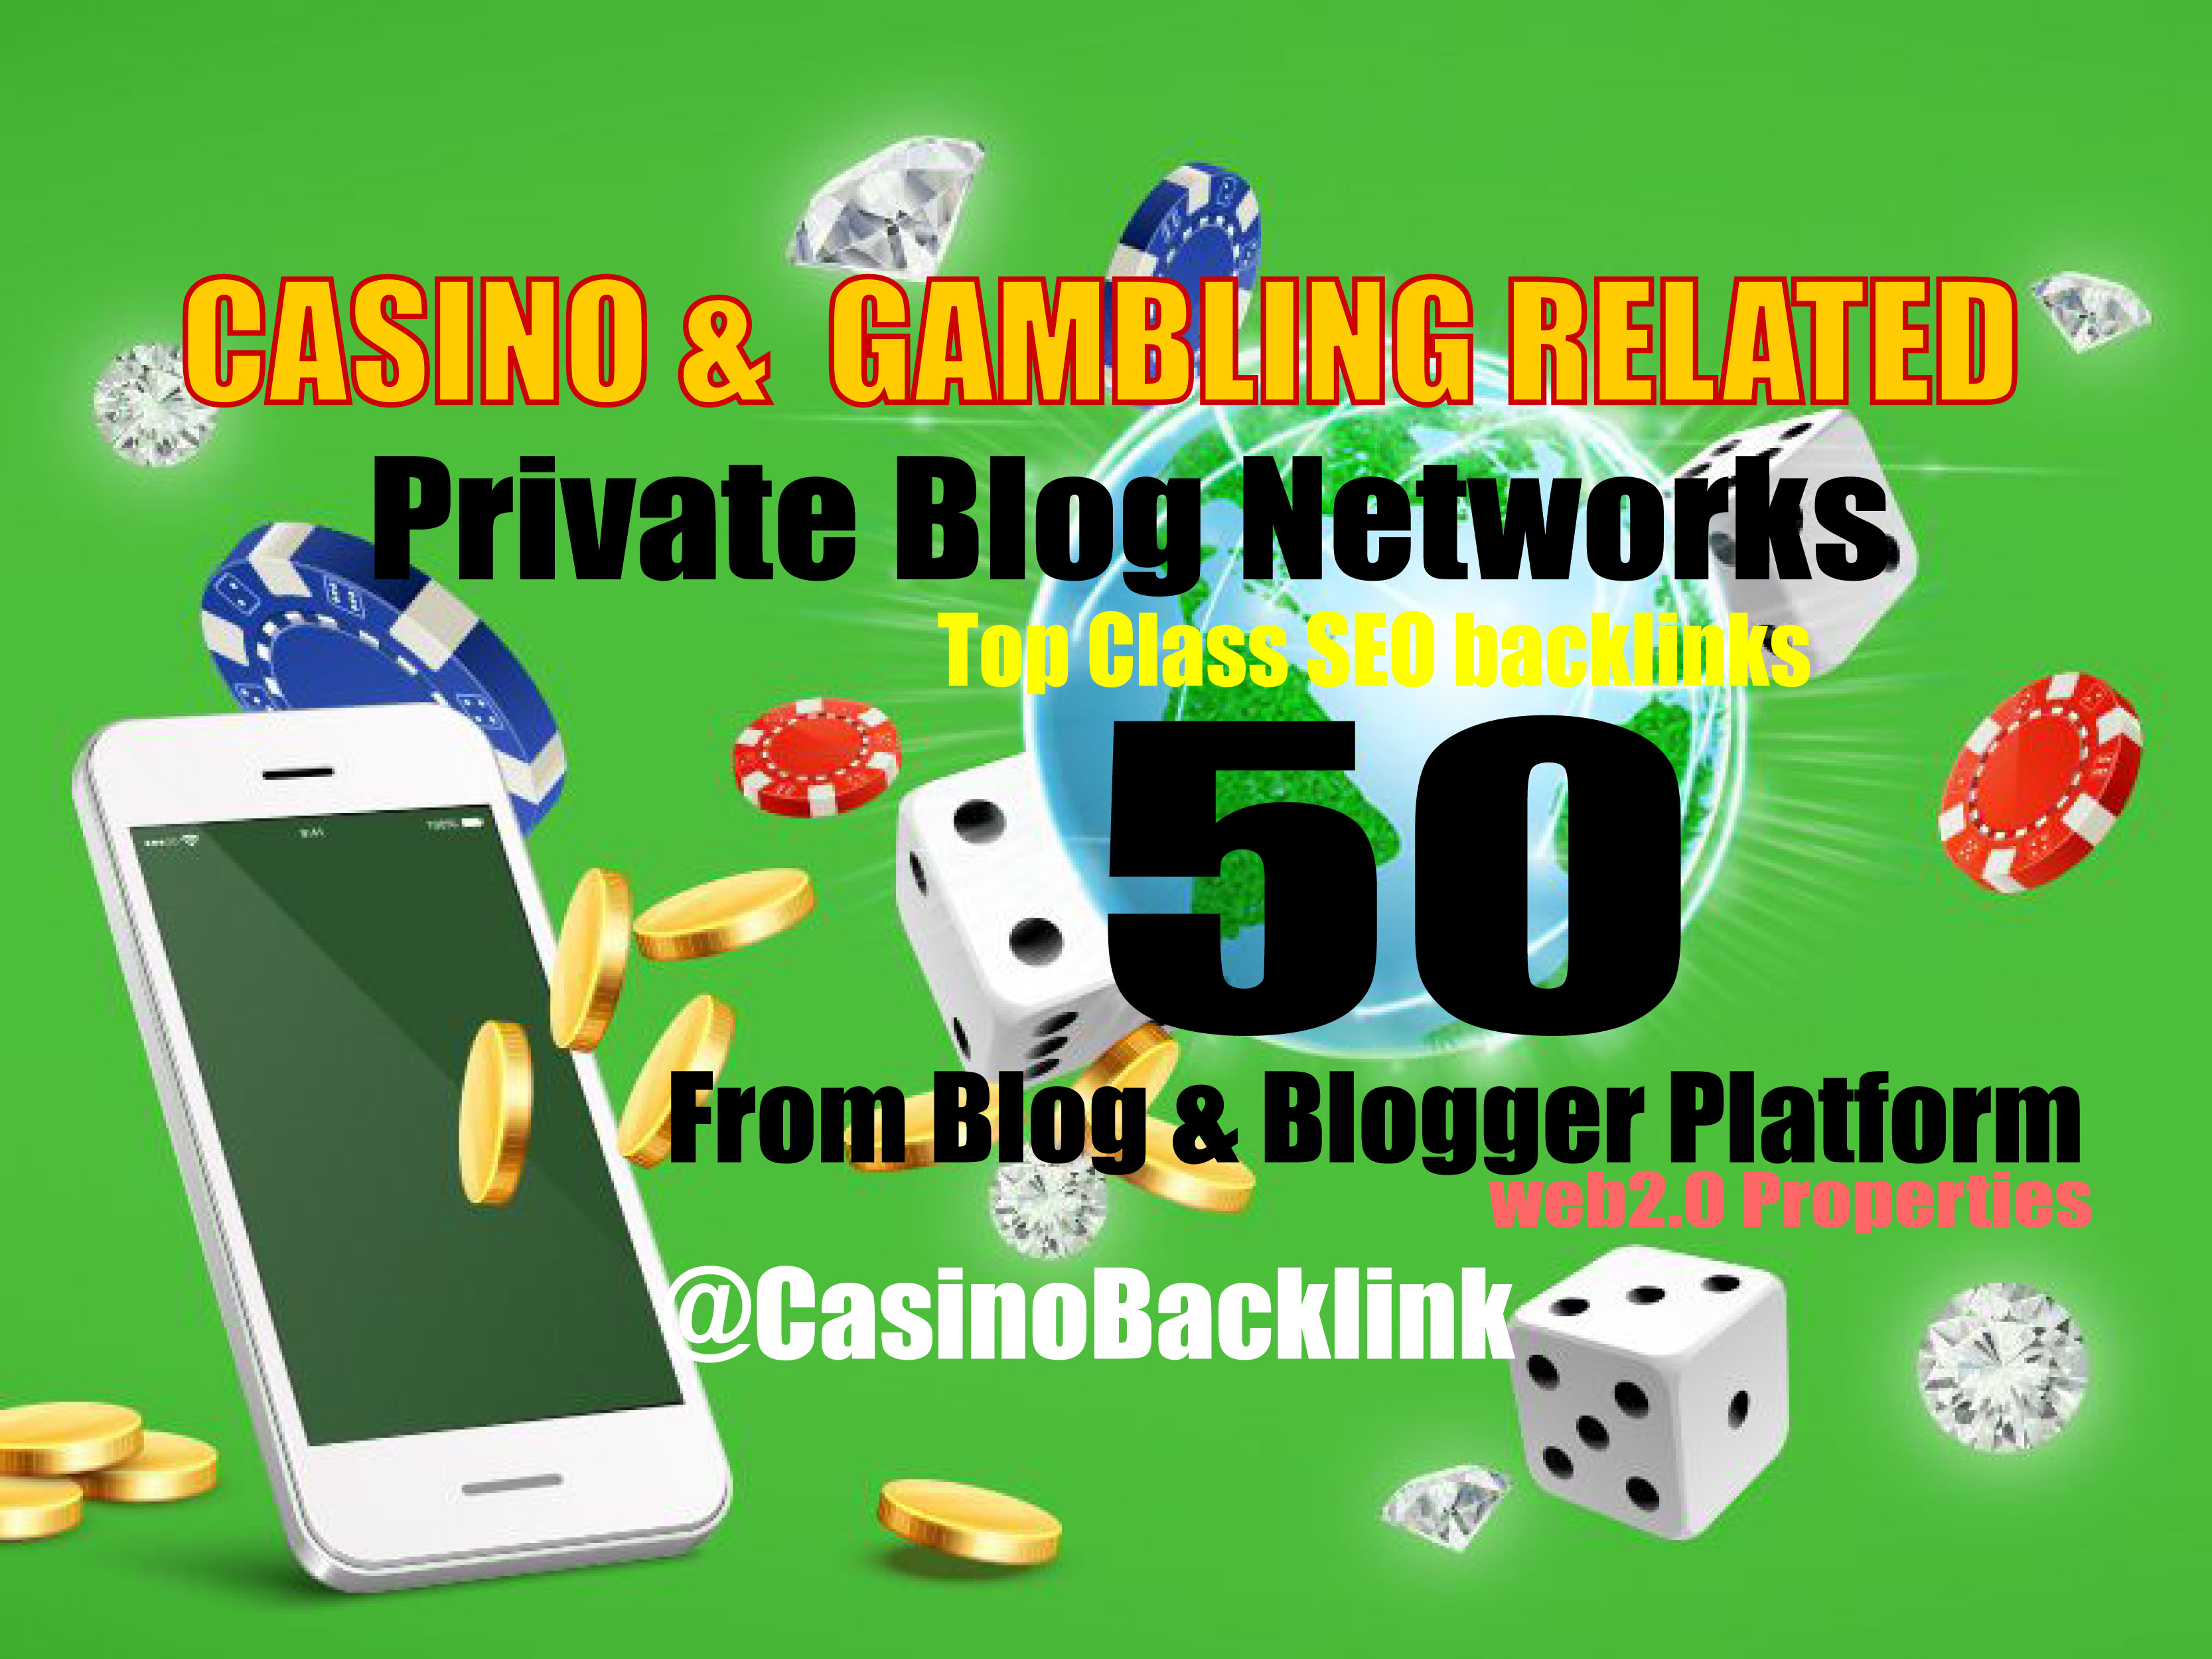 50 blogpost - Casino & Gambling related From Blogger & Blog we2.0 sites